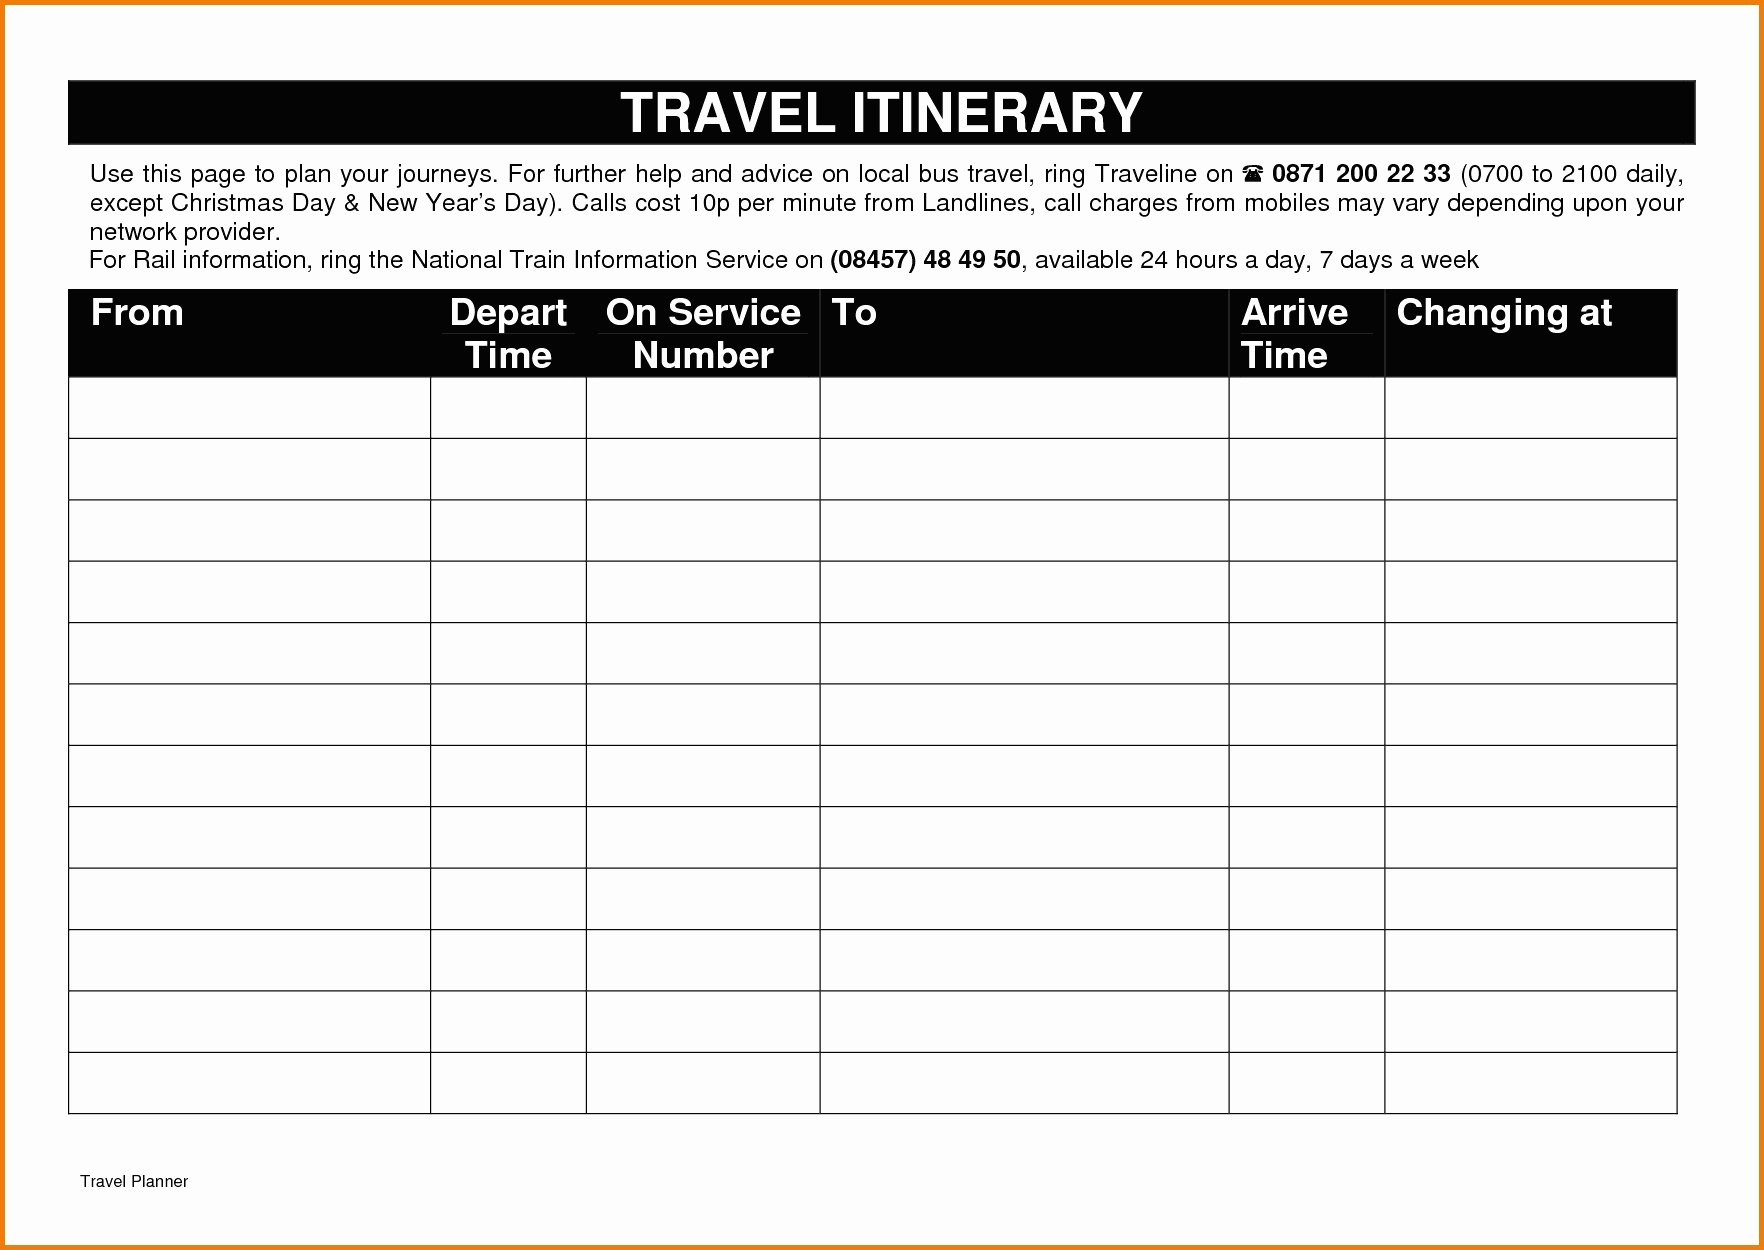 Travel Itinerary Template Google Docs New Itinerary Template Google Docs Five Things Nobody told You